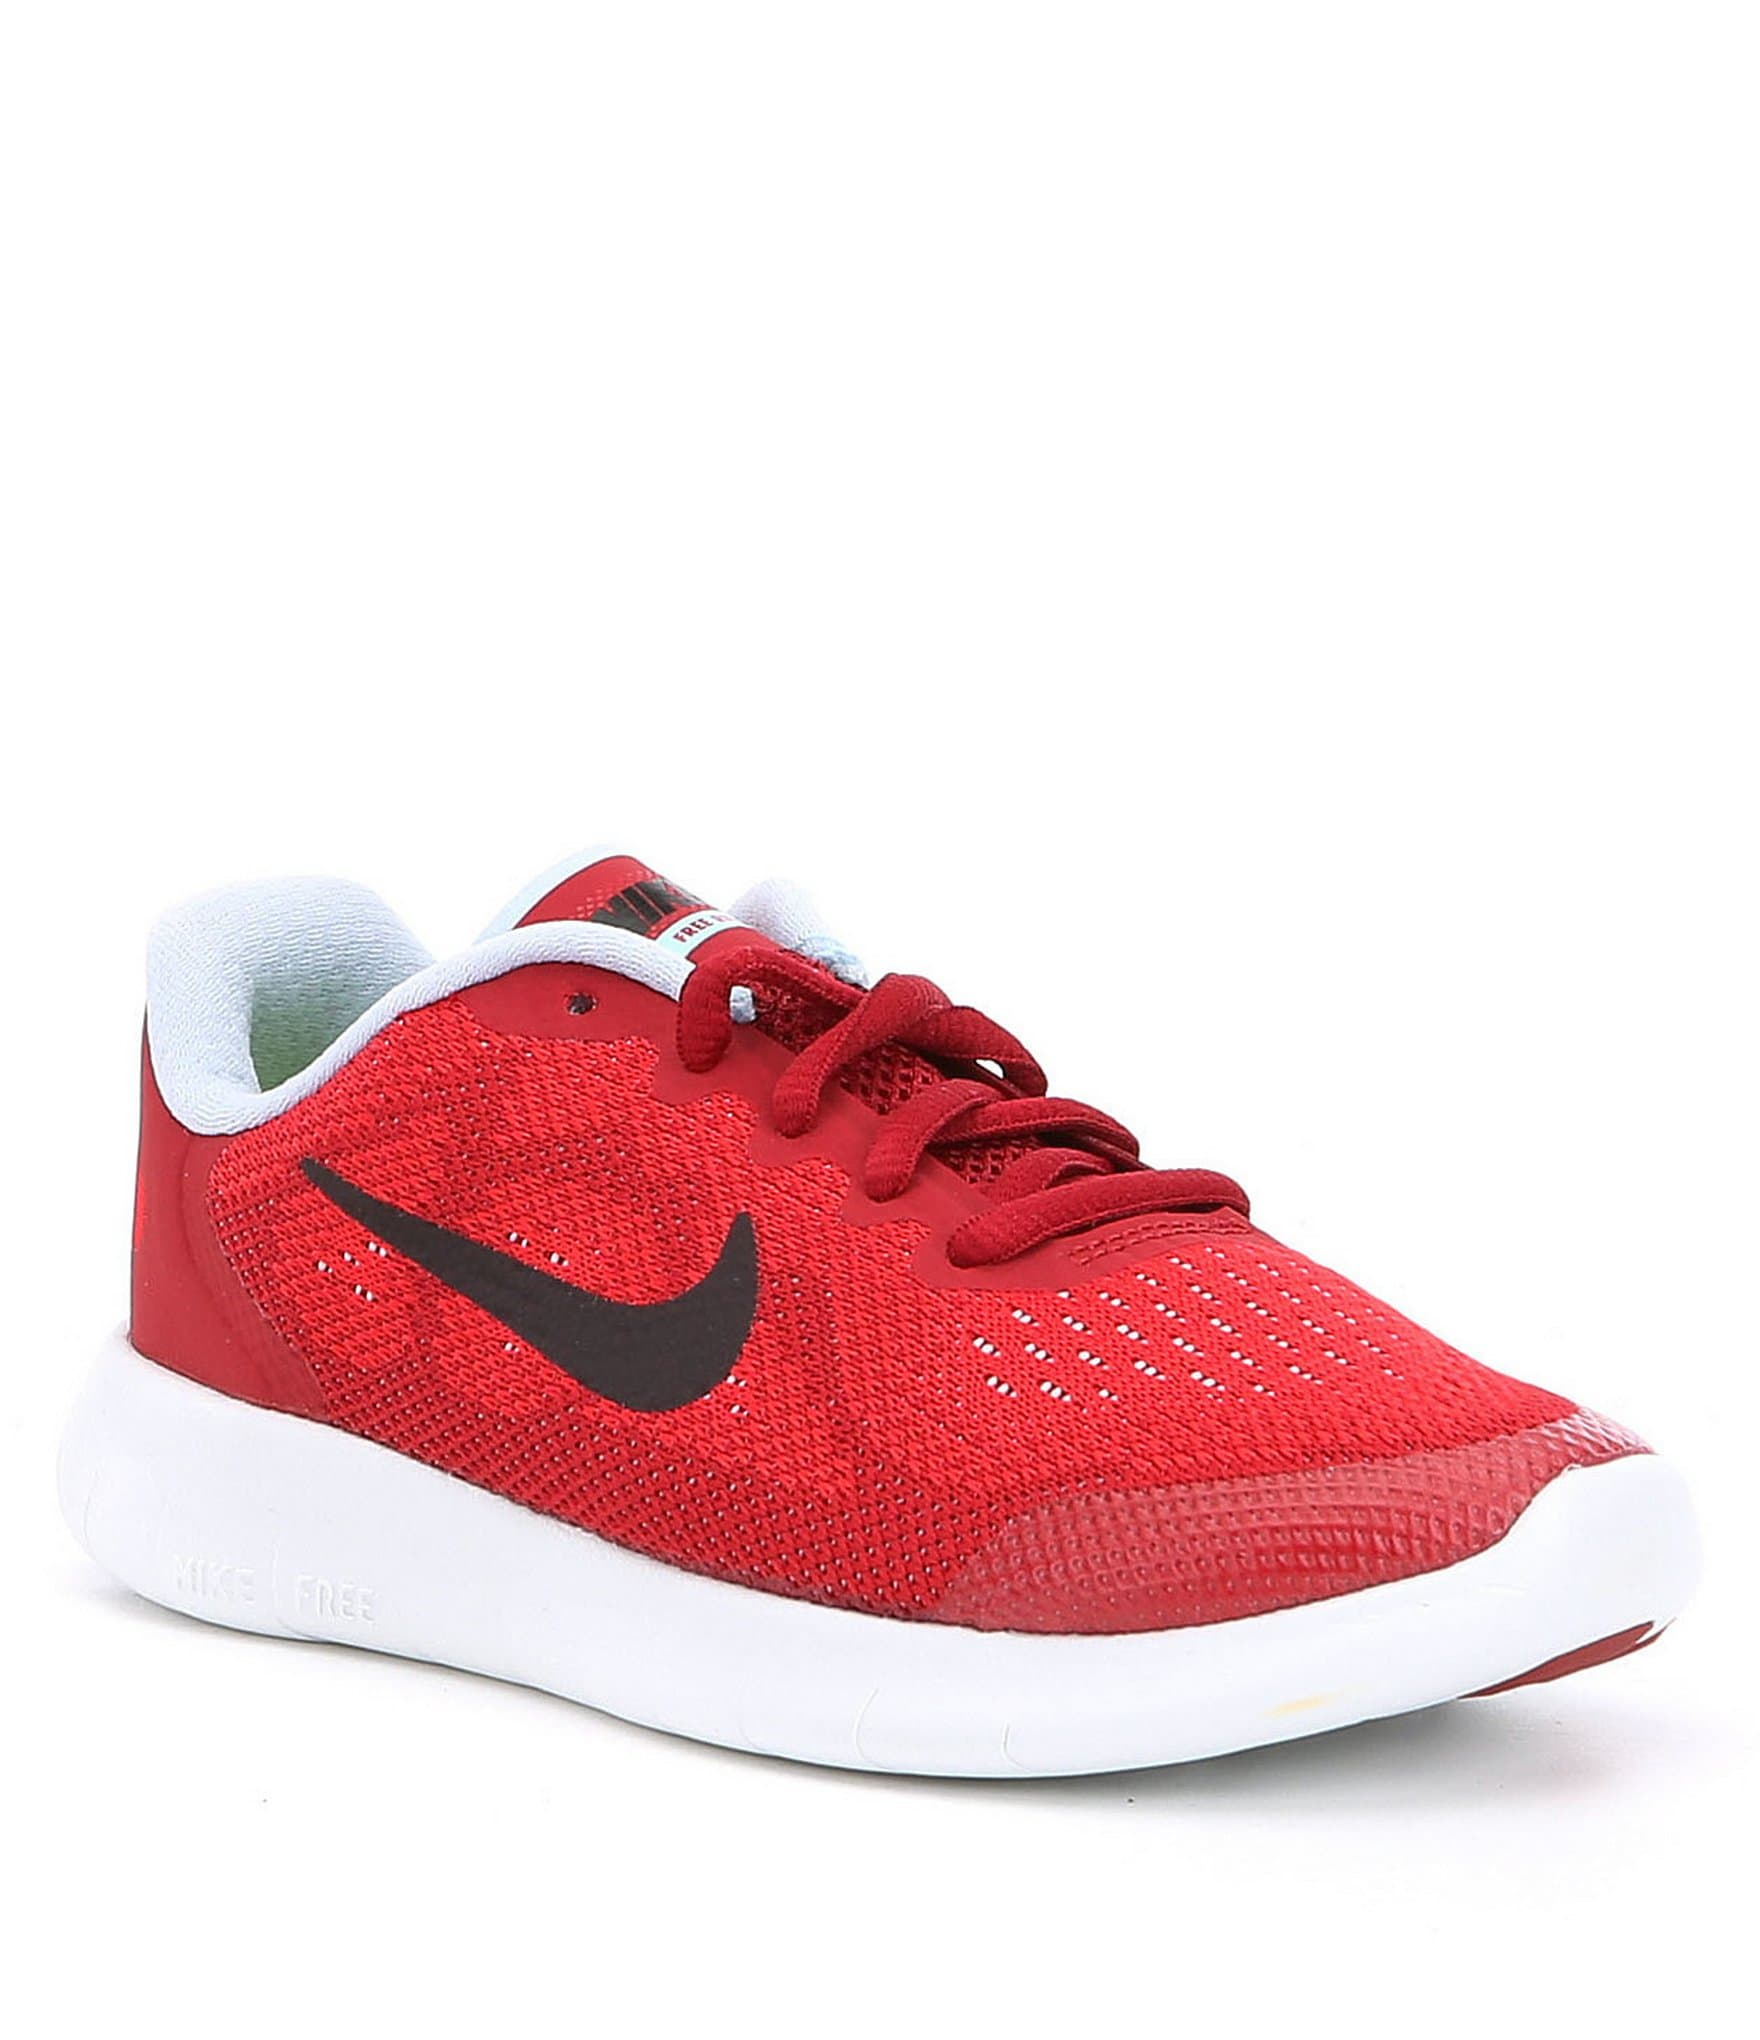 buy popular 967c0 7675a Boys Nike Free Clearance Toddler Boy Nike Shoes Clearance ...